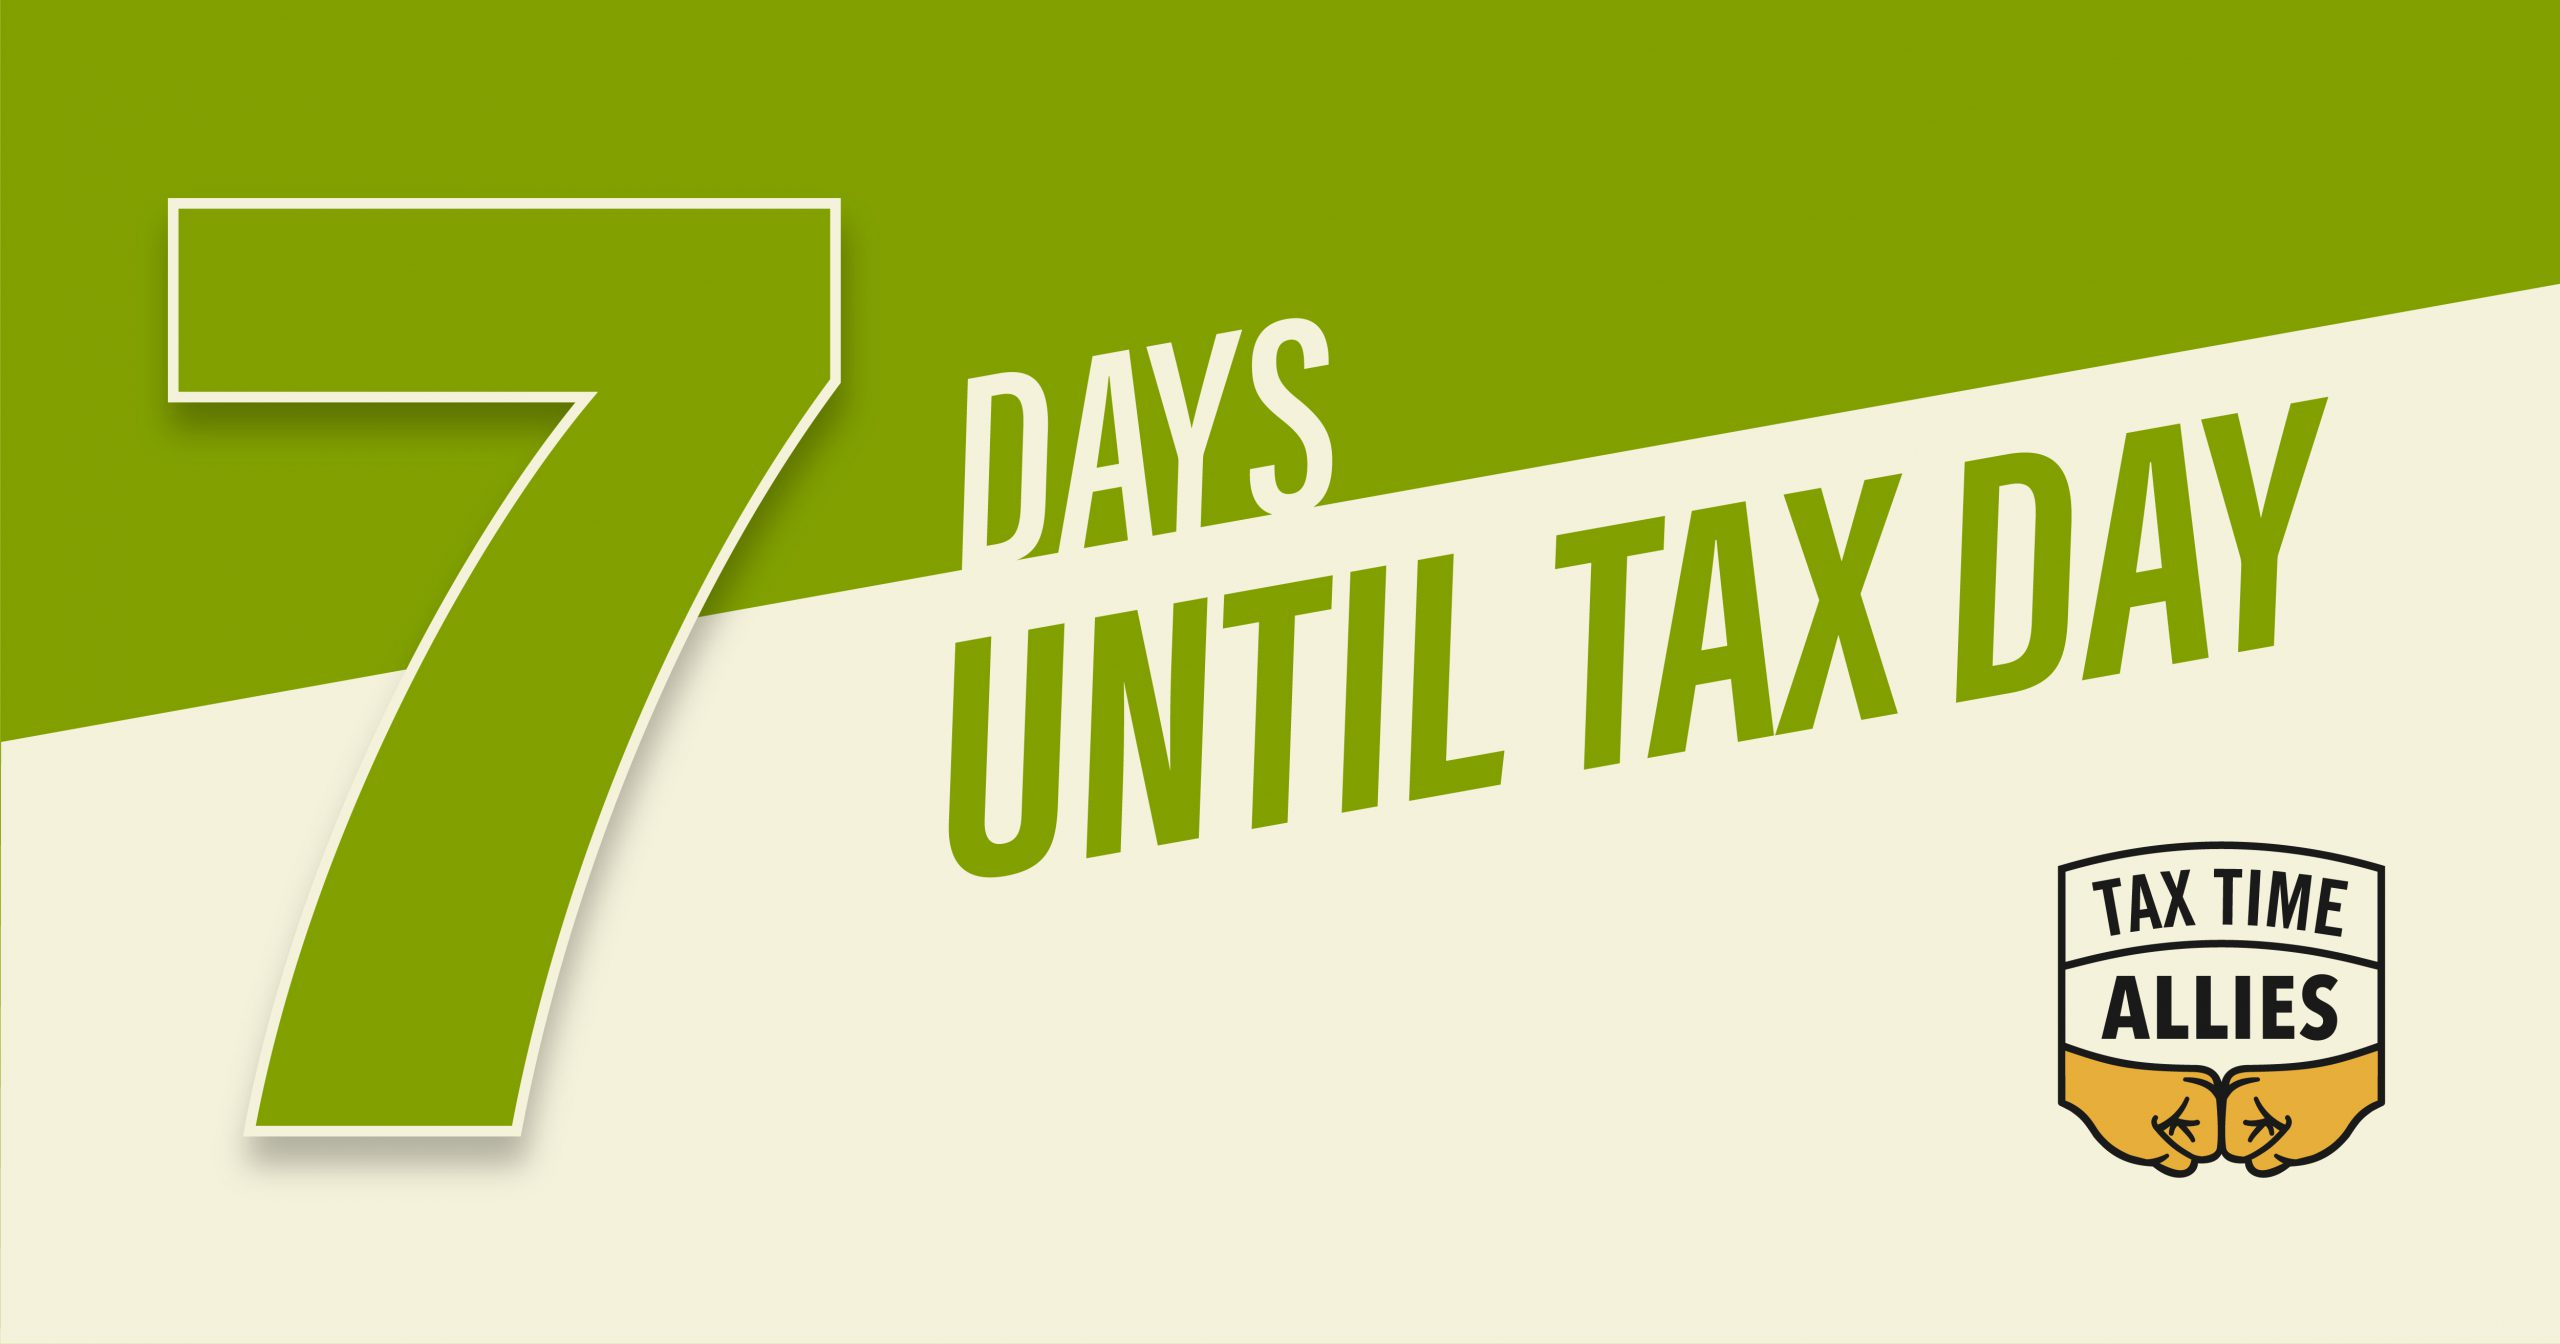 One Week Until Tax Day